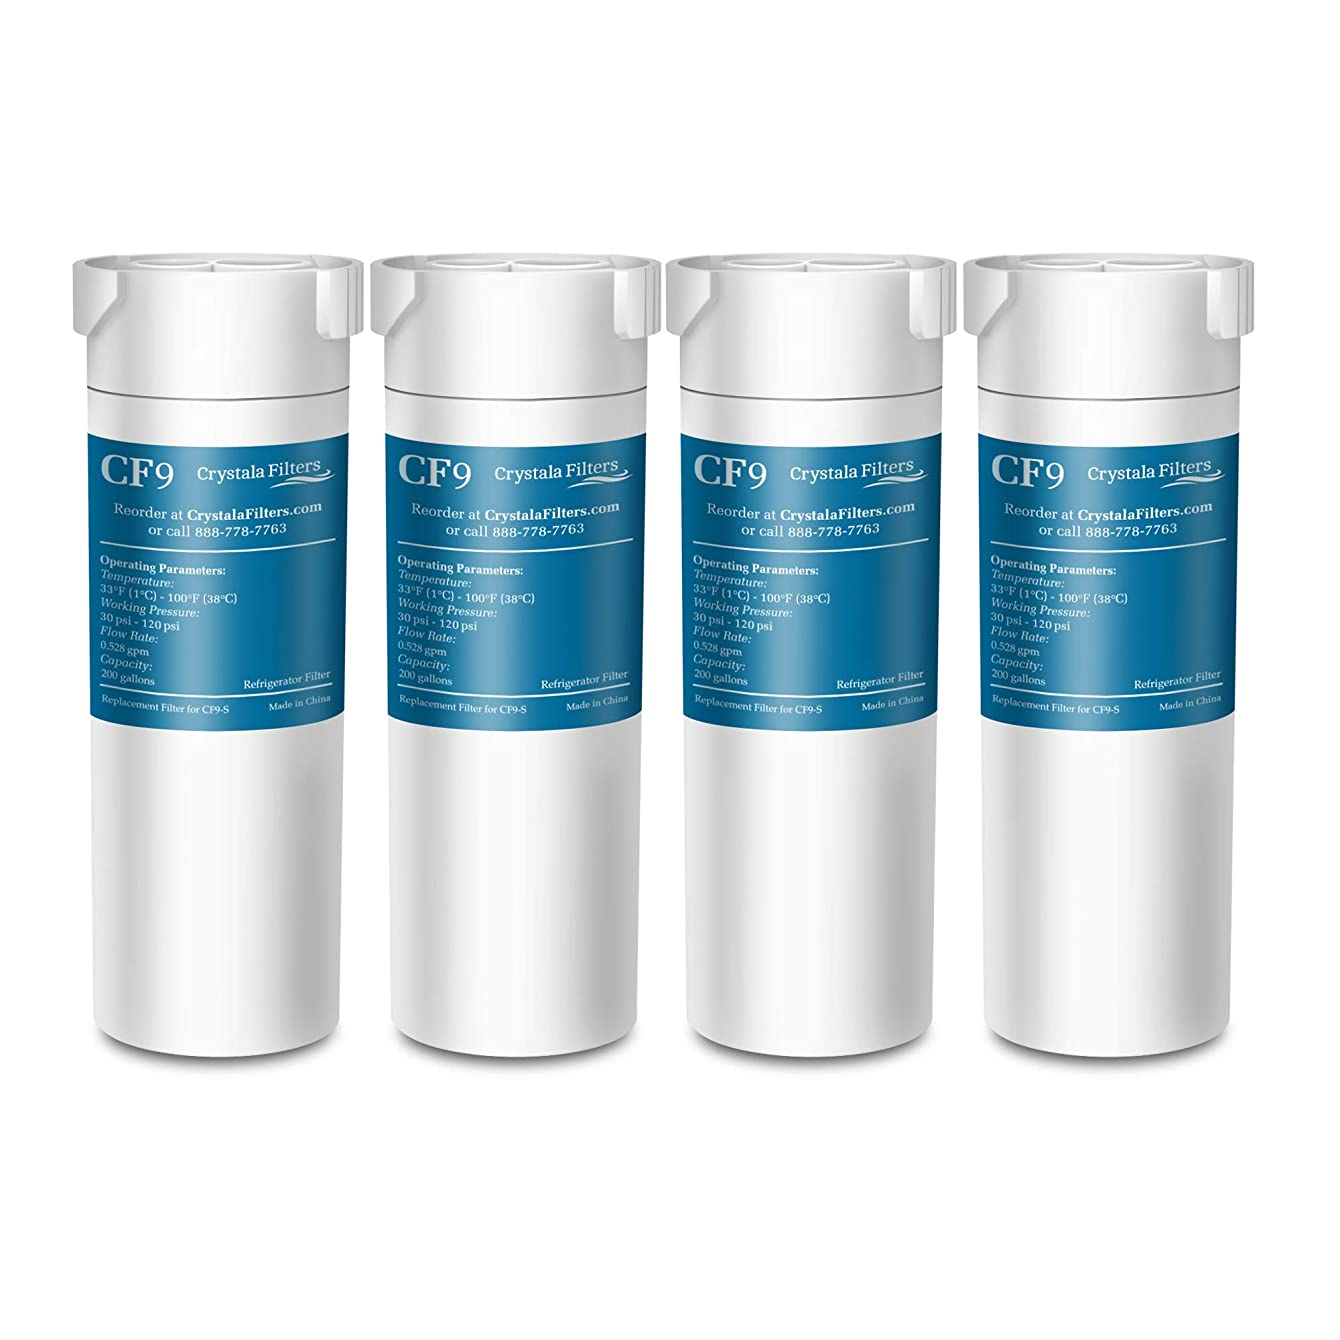 Crystala Filters Compatible with GE XWF Water Filter, Replacement for GE SmartWater Refrigerator Water Filter, (4 PACK)